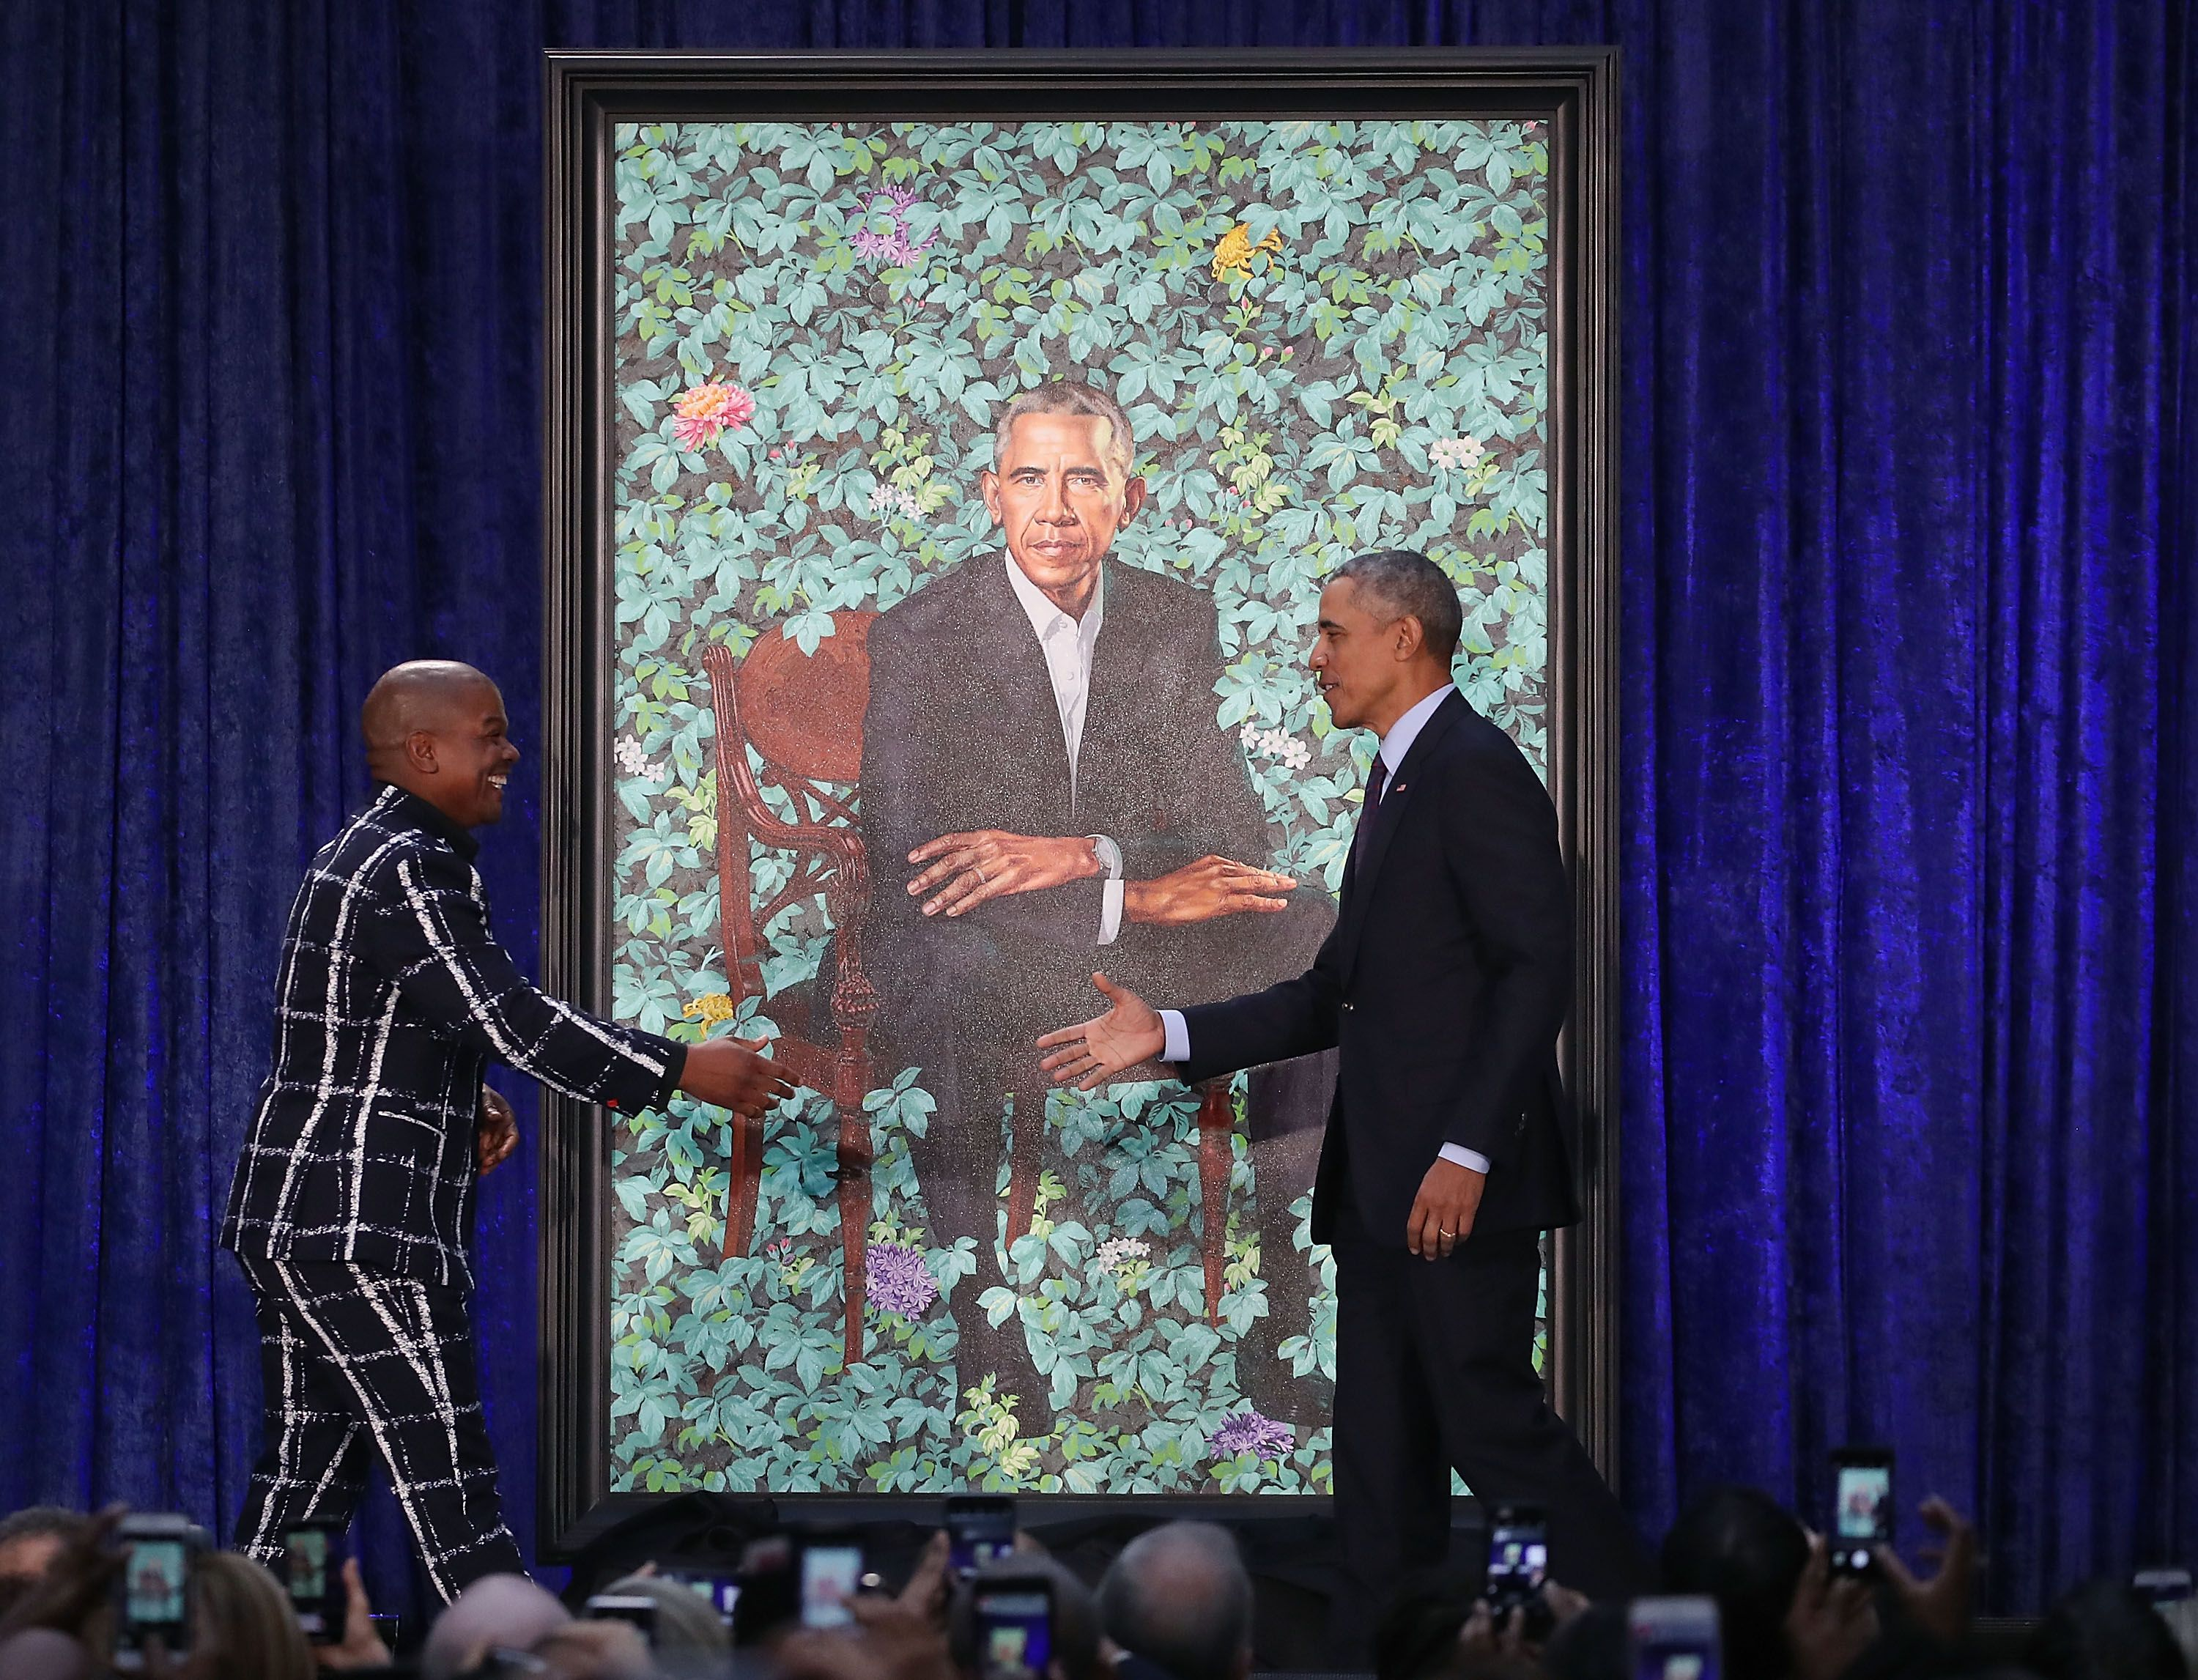 Michelle Obama's presidential portrait has some people scratching their heads